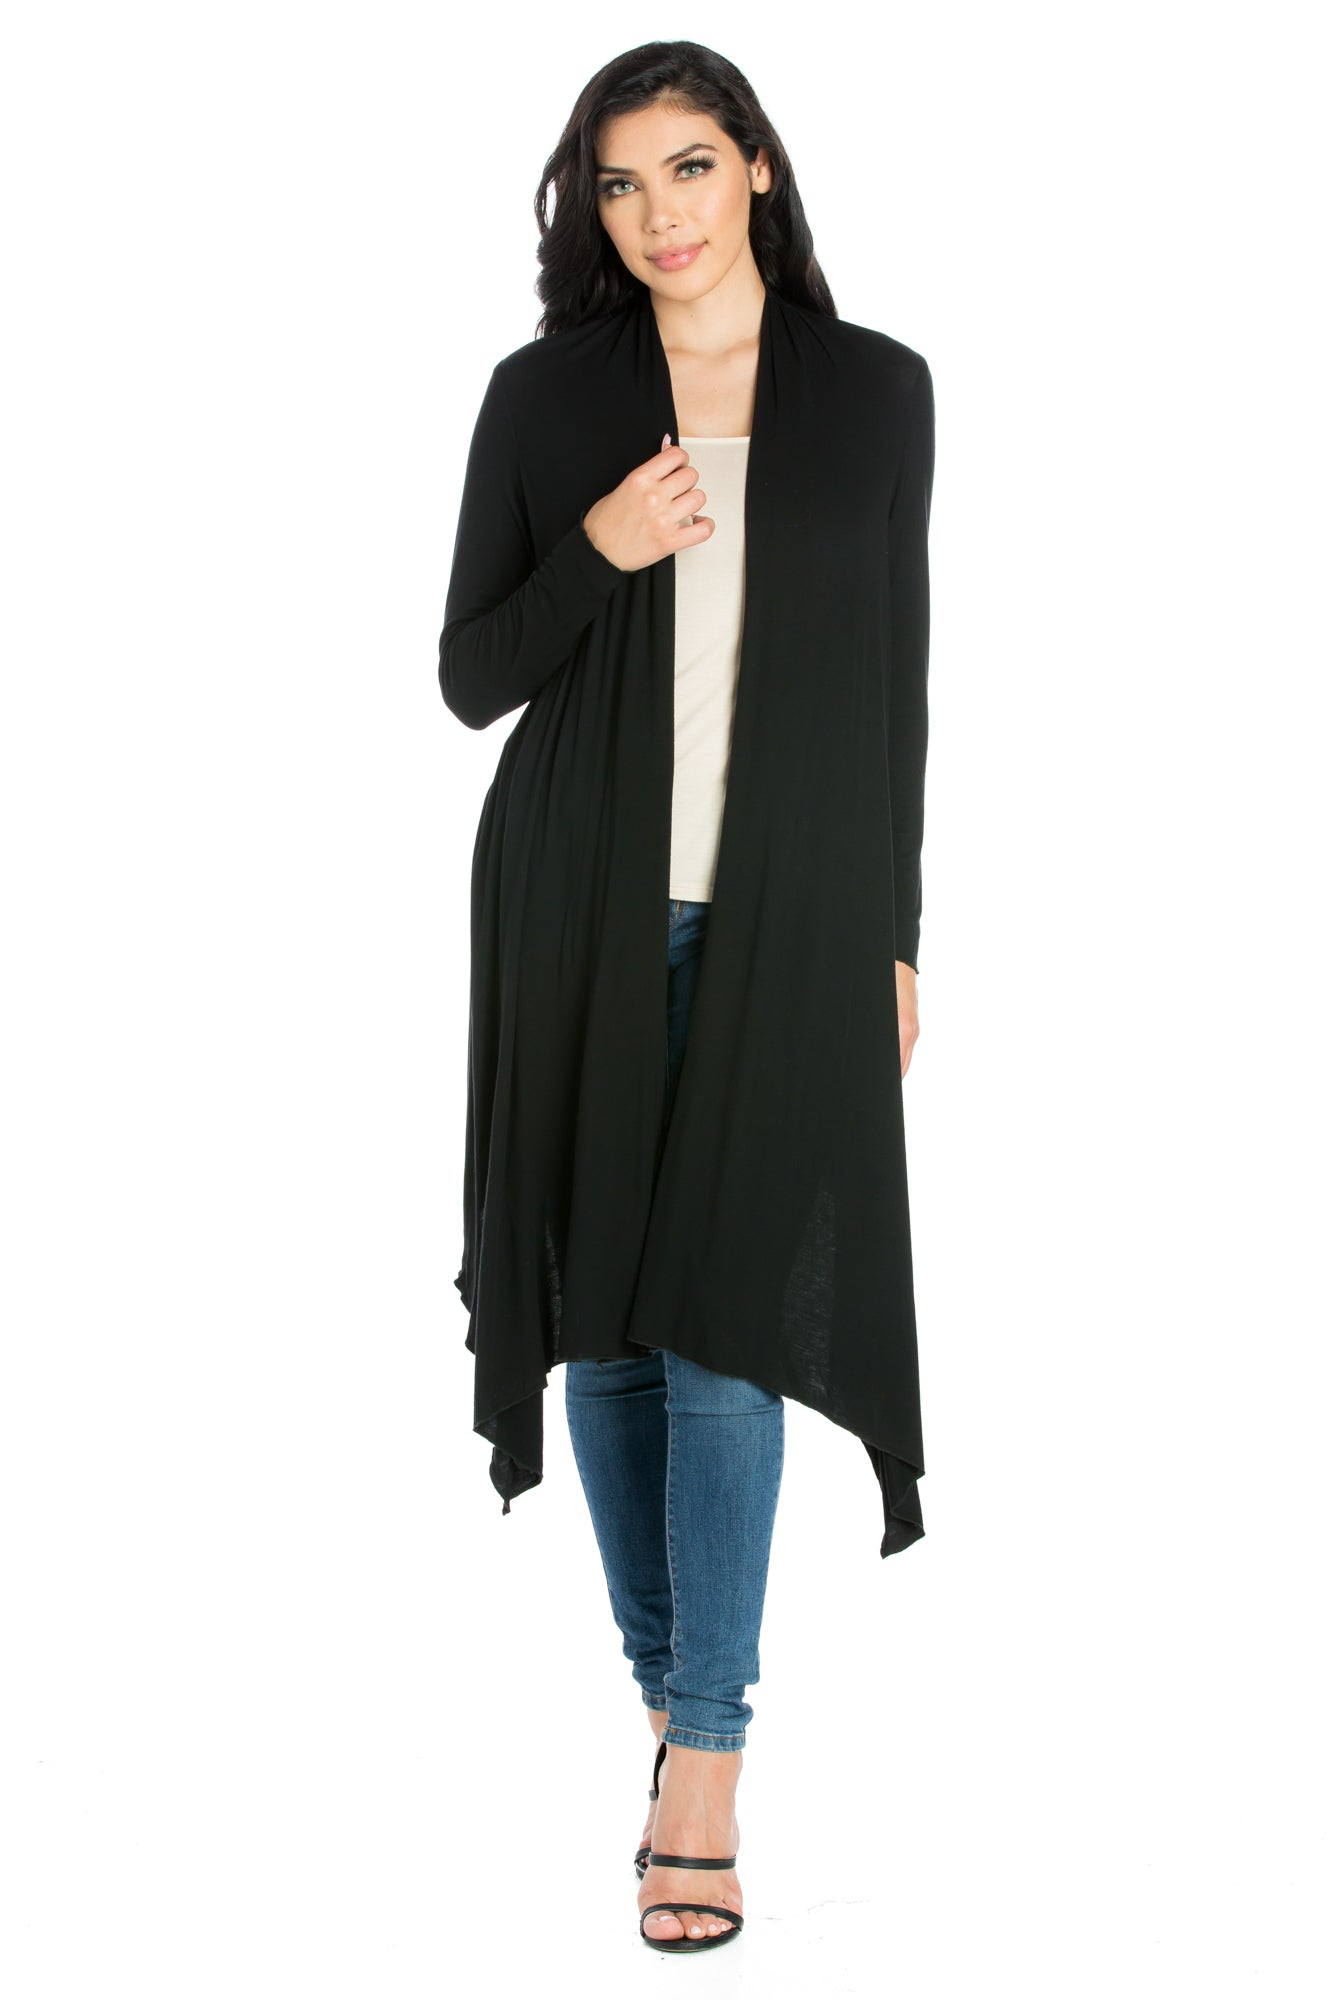 24seven Comfort Apparel Extra Long Open Front Cardigan-SHRUGS-24Seven Comfort Apparel-BLACK-S-24/7 Comfort Apparel